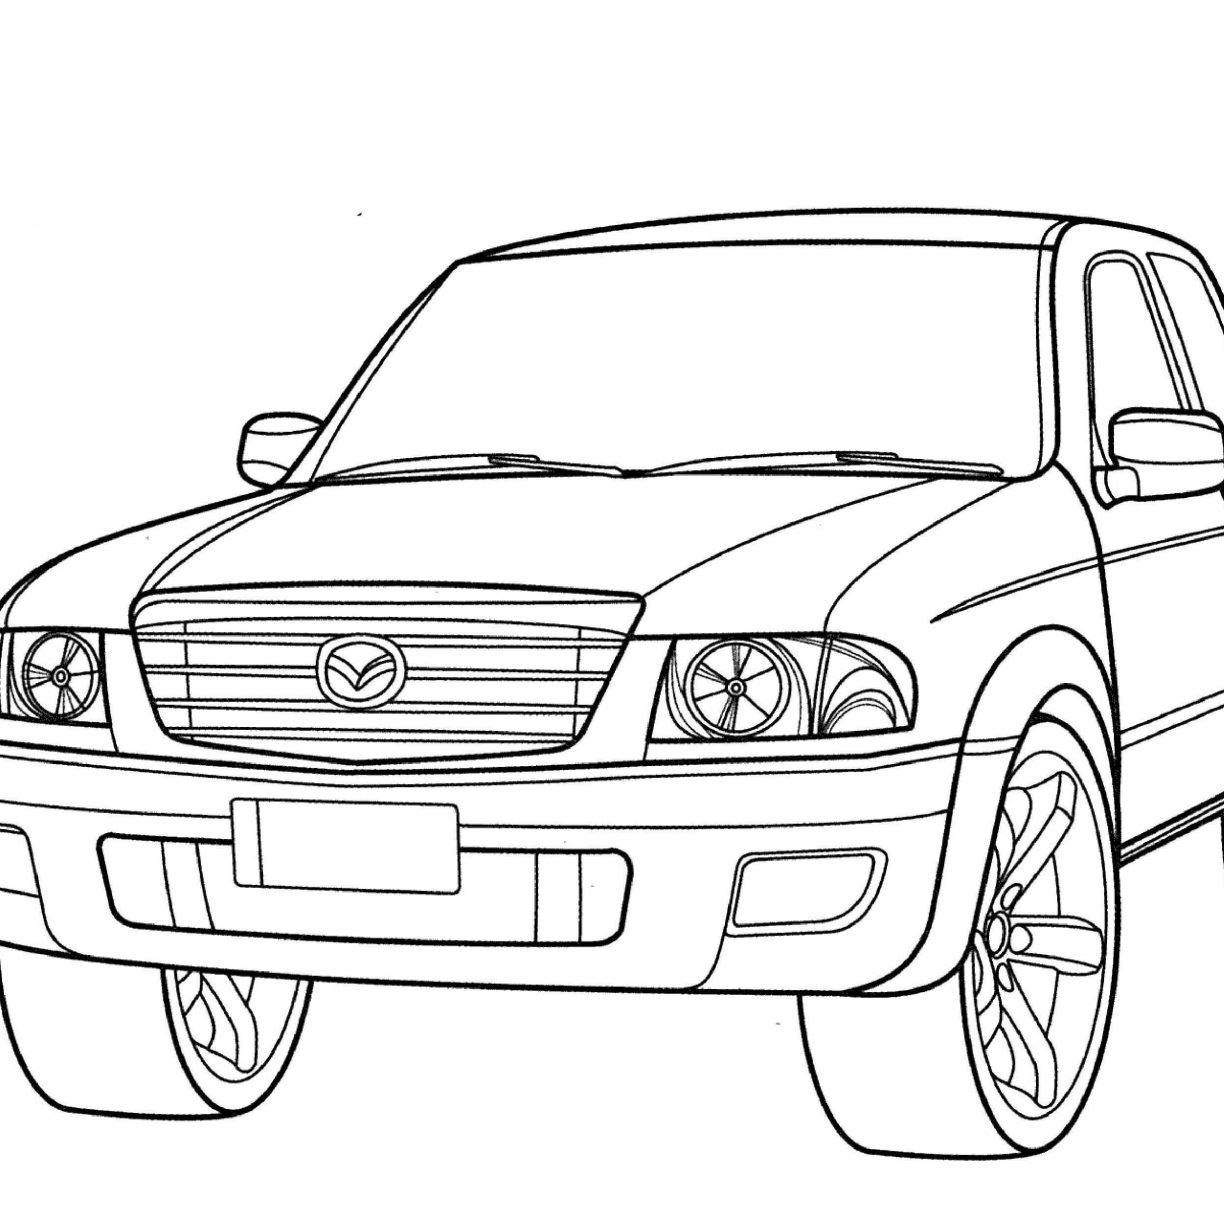 1224x1224 Dodge Truck Coloring Pages Pick Up And Car For Adults Free